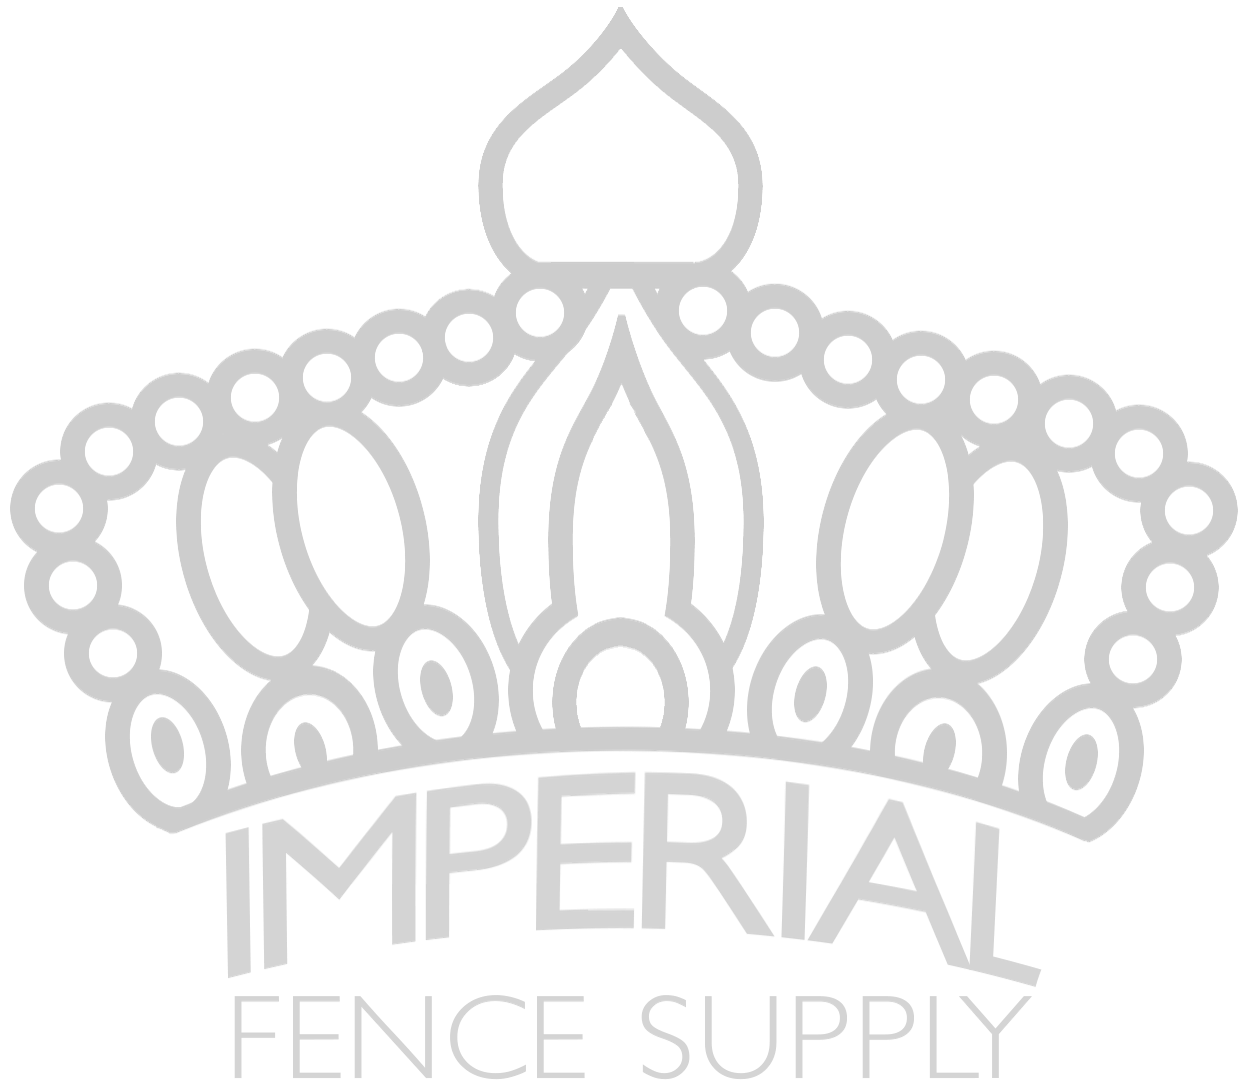 Imperial Fence Supply